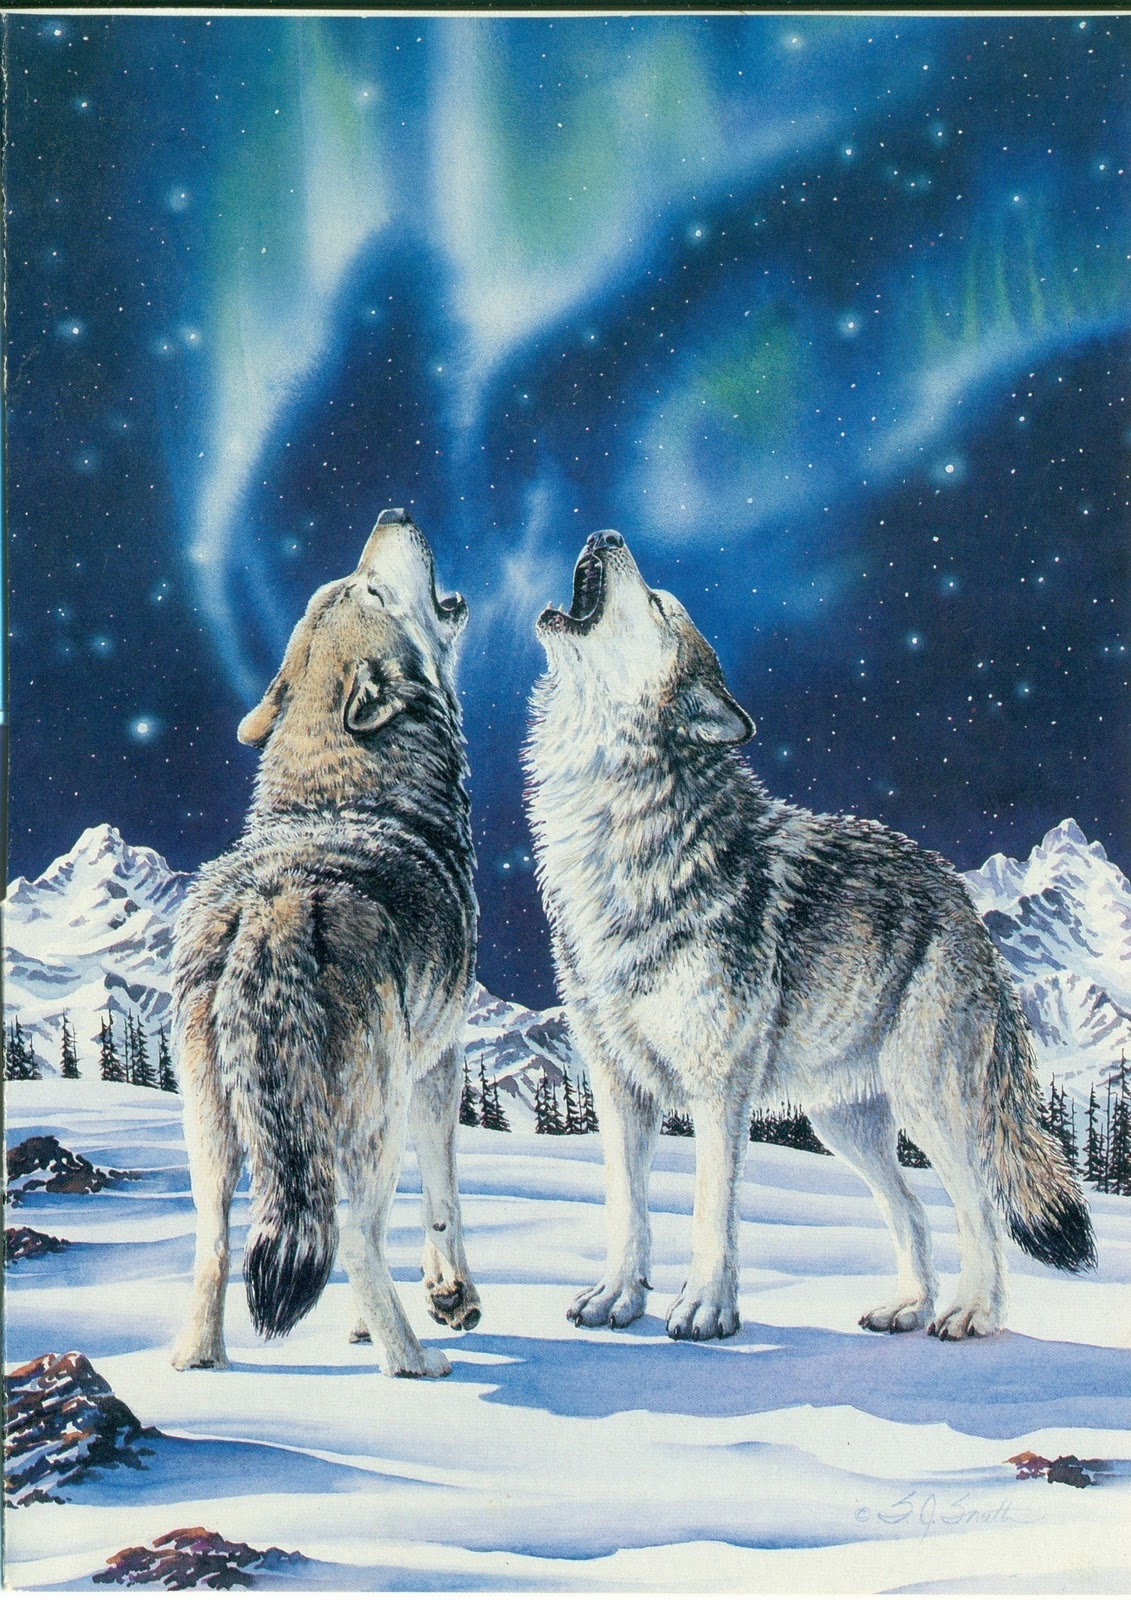 She Wolf Night Magic Of The Snow